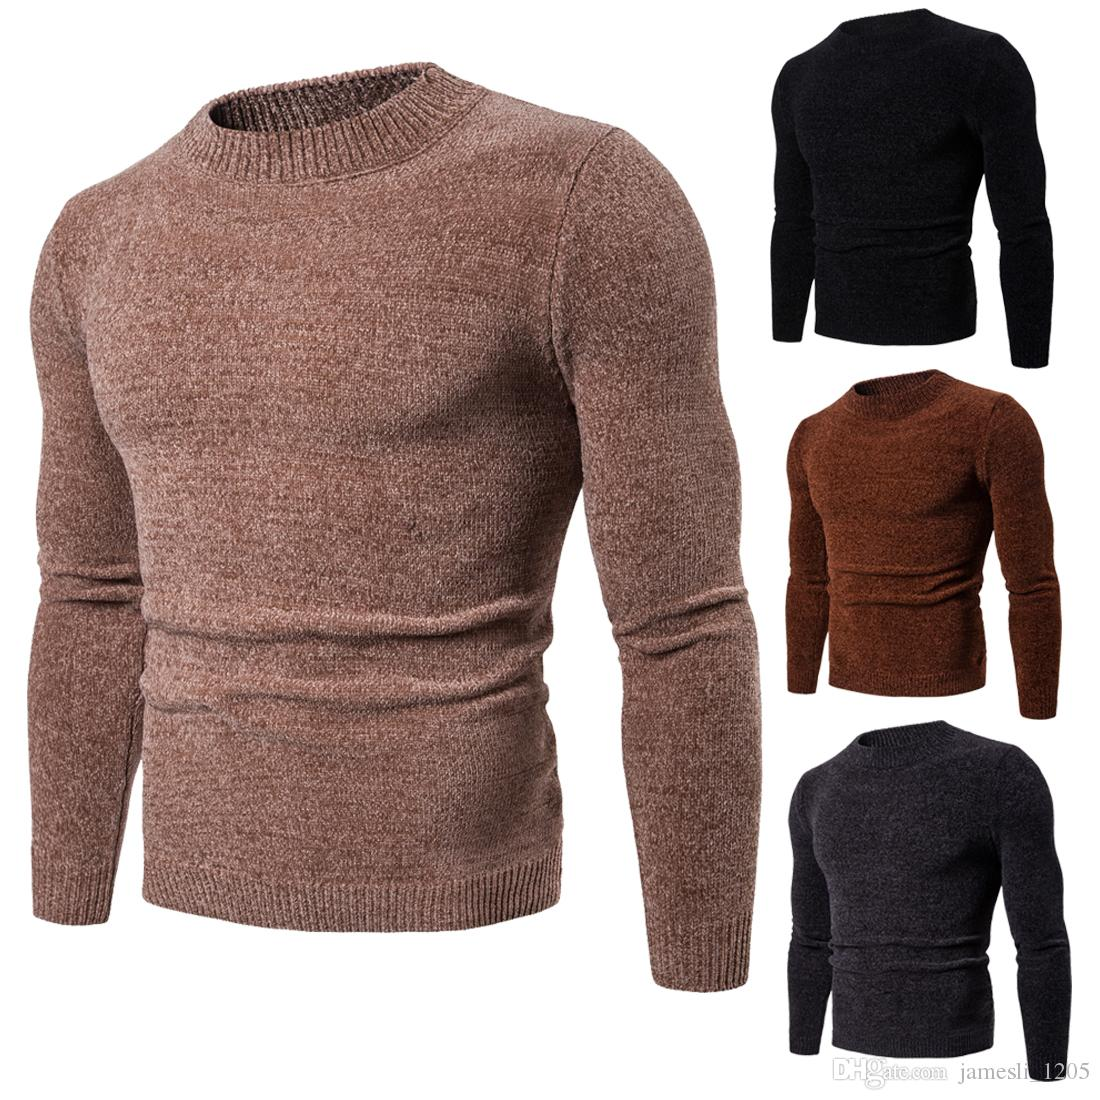 2019 New Designer Sweater Pullover Men Brand Tops With Long Sleeve Crew  Neck Wool Blend Fabric Slim Casual Winter Mens Clothing Online From  Jamesli 1205 8359f51beb5